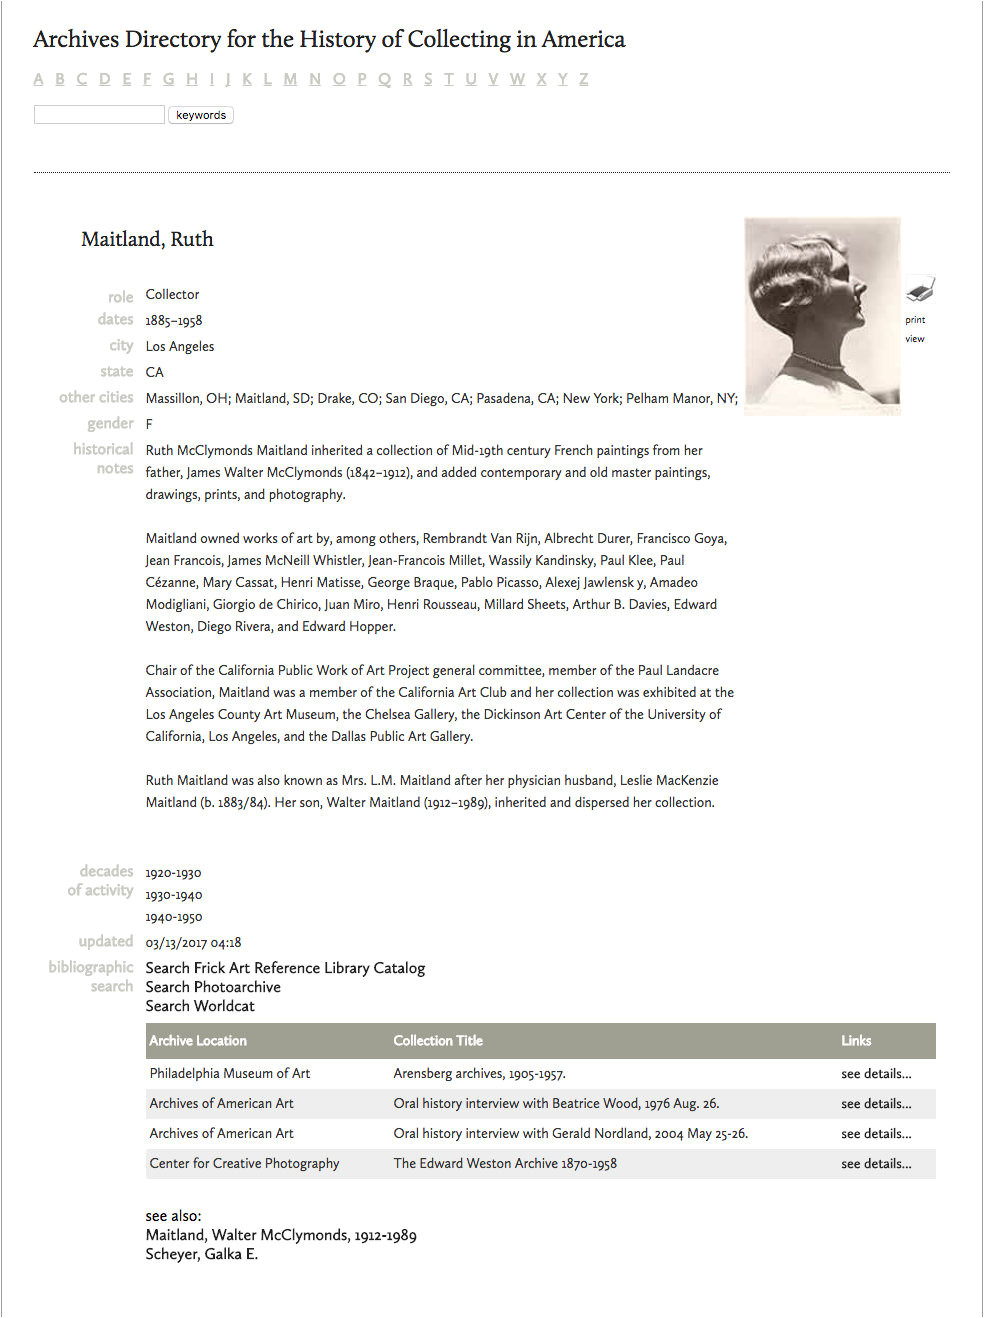 abb 3 the frick collection maitland ruth in archives directory for